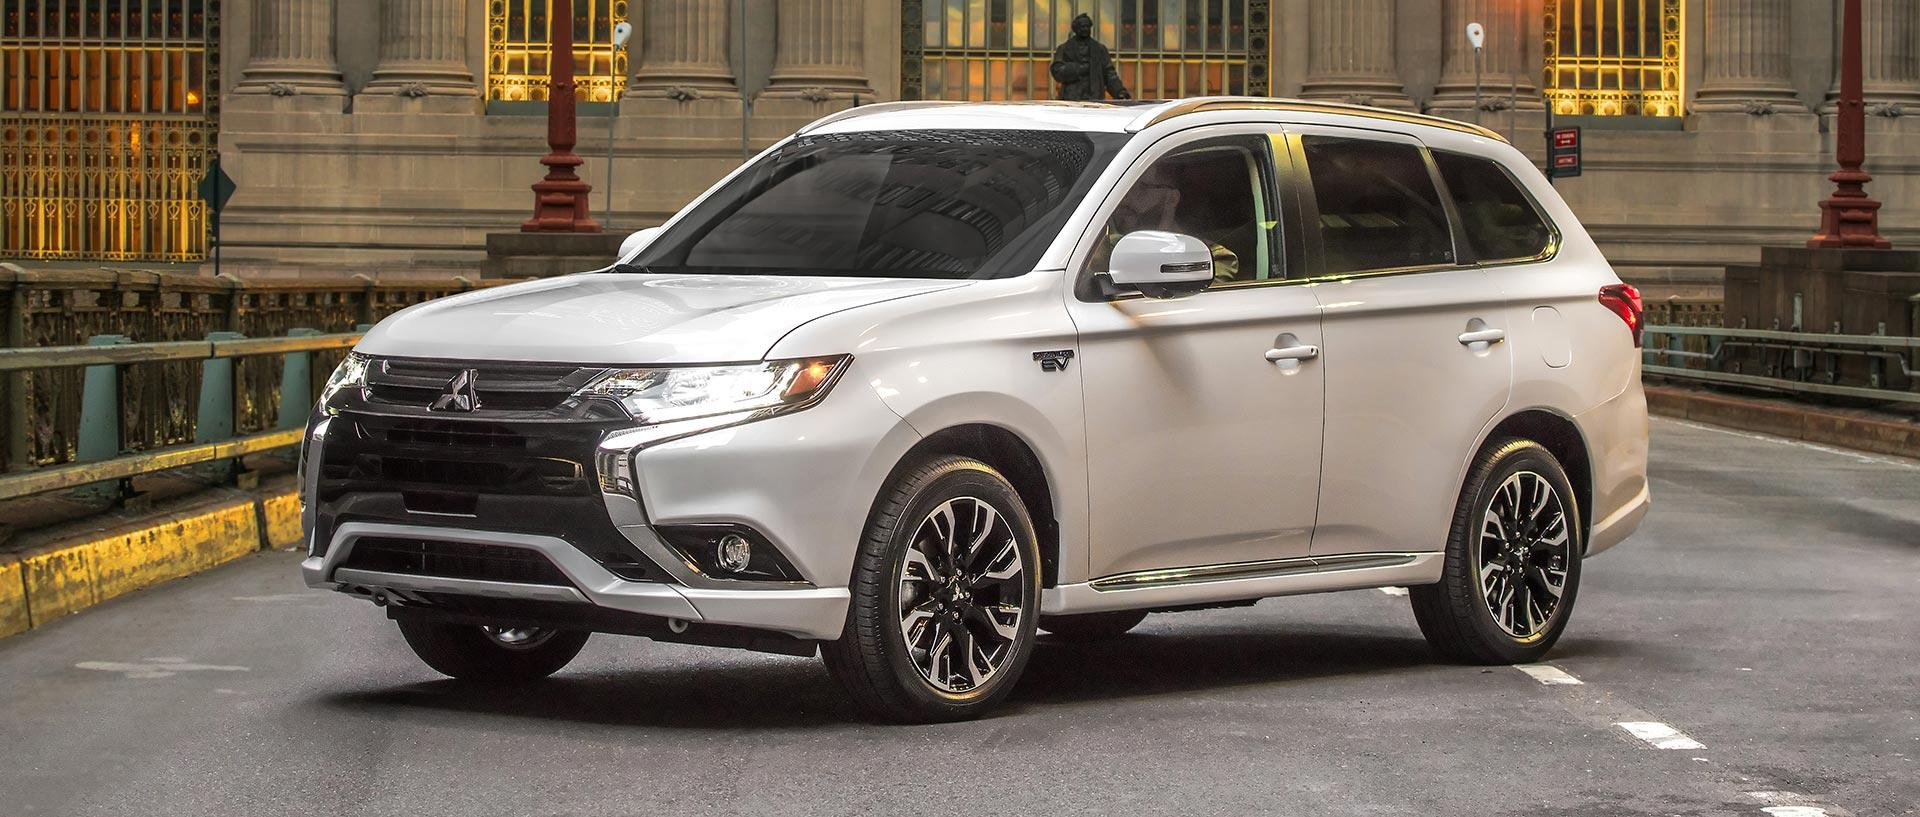 2017 mitsubishi outlander phev electrifies the suv segment. Black Bedroom Furniture Sets. Home Design Ideas